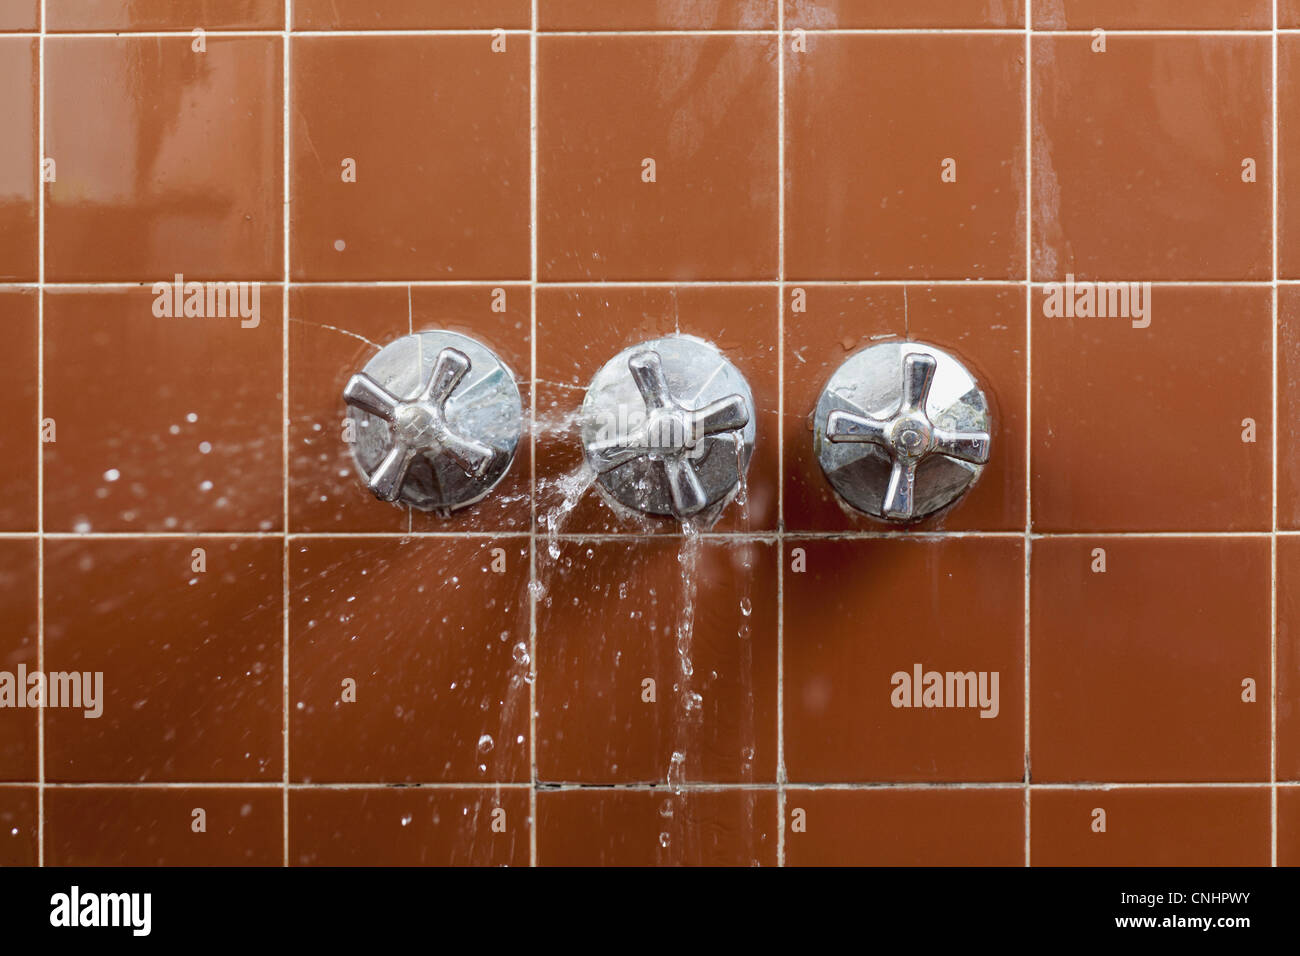 A shower faucet handle spraying leaking water Stock Photo ...